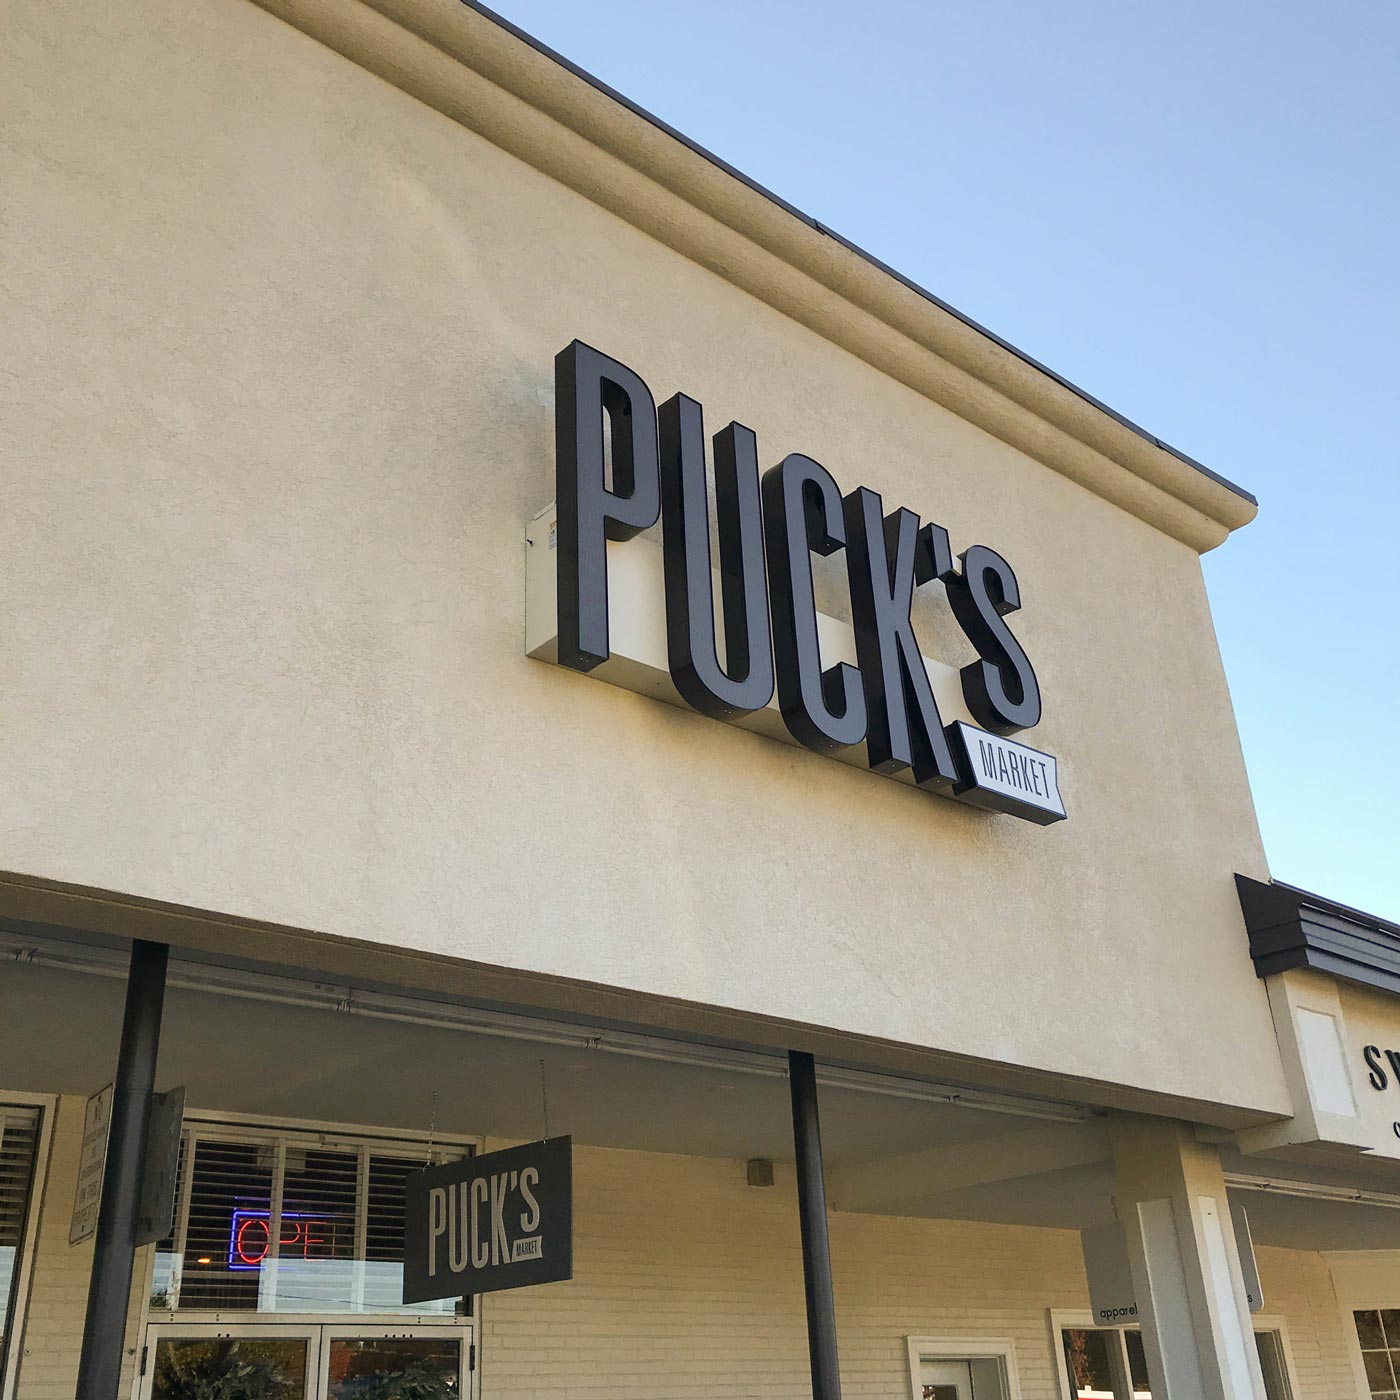 exterior sign that says Puck's Market on tan building